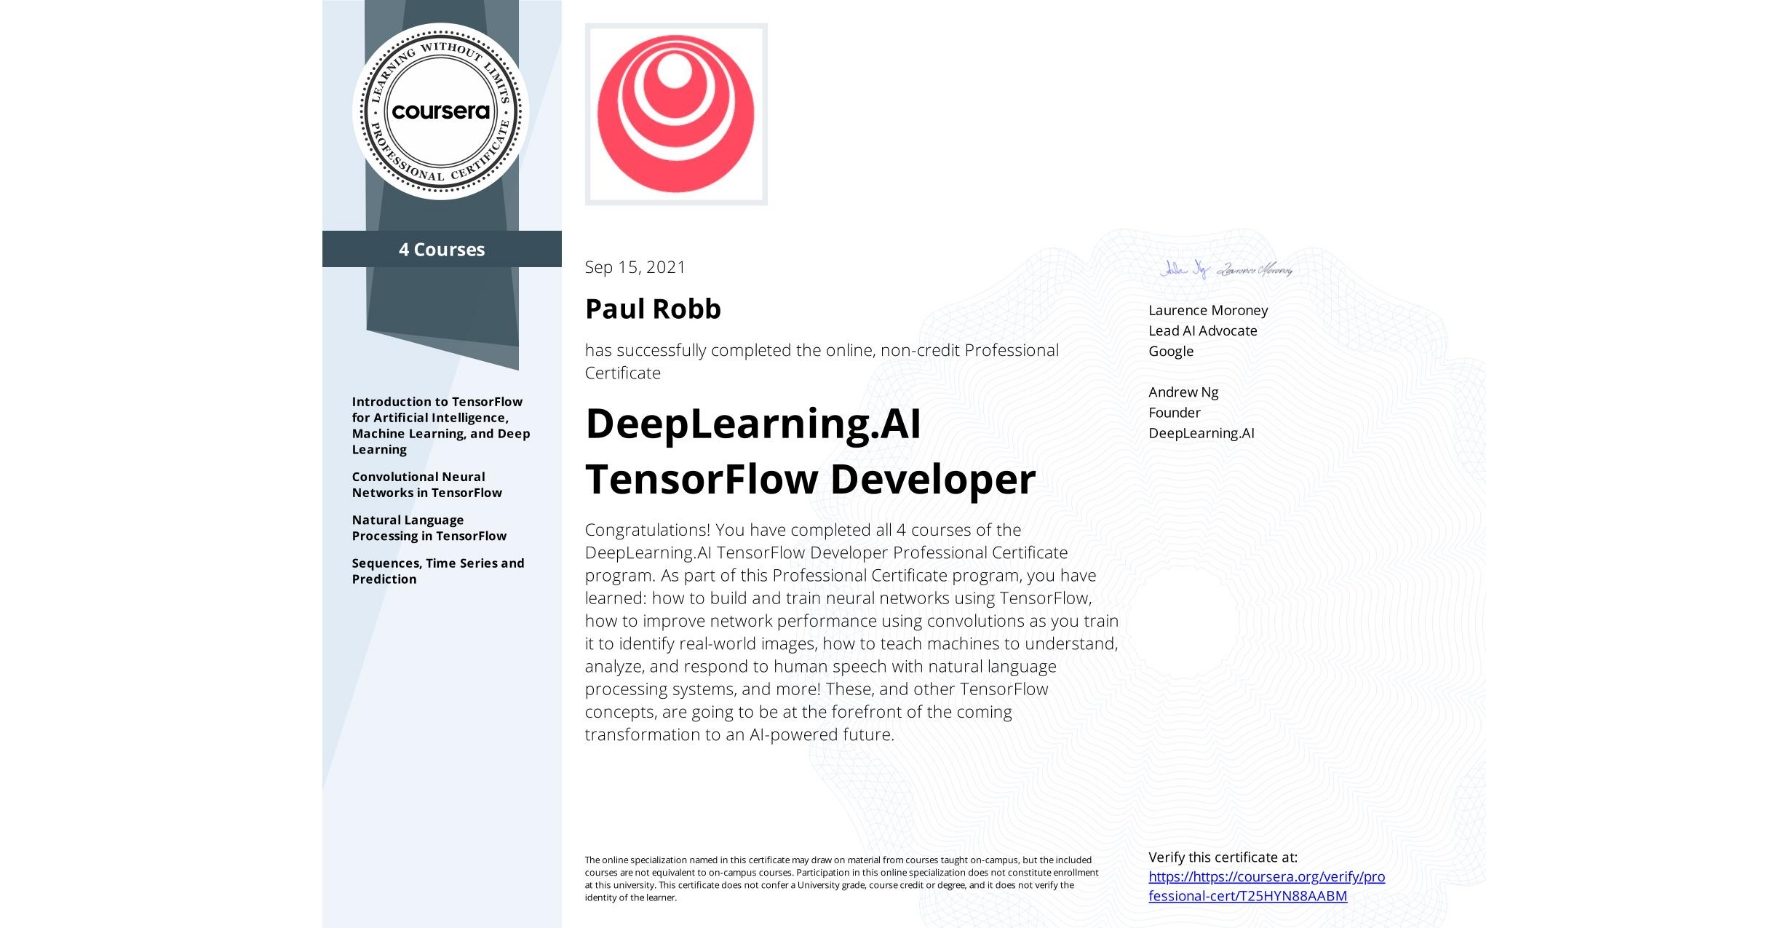 View certificate for Paul Robb, DeepLearning.AI TensorFlow Developer, offered through Coursera. Congratulations! You have completed all 4 courses of the DeepLearning.AI TensorFlow Developer Professional Certificate program.   As part of this Professional Certificate program, you have learned: how to build and train neural networks using TensorFlow, how to improve network performance using convolutions as you train it to identify real-world images, how to teach machines to understand, analyze, and respond to human speech with natural language processing systems, and more!  These, and other TensorFlow concepts, are going to be at the forefront of the coming transformation to an AI-powered future.